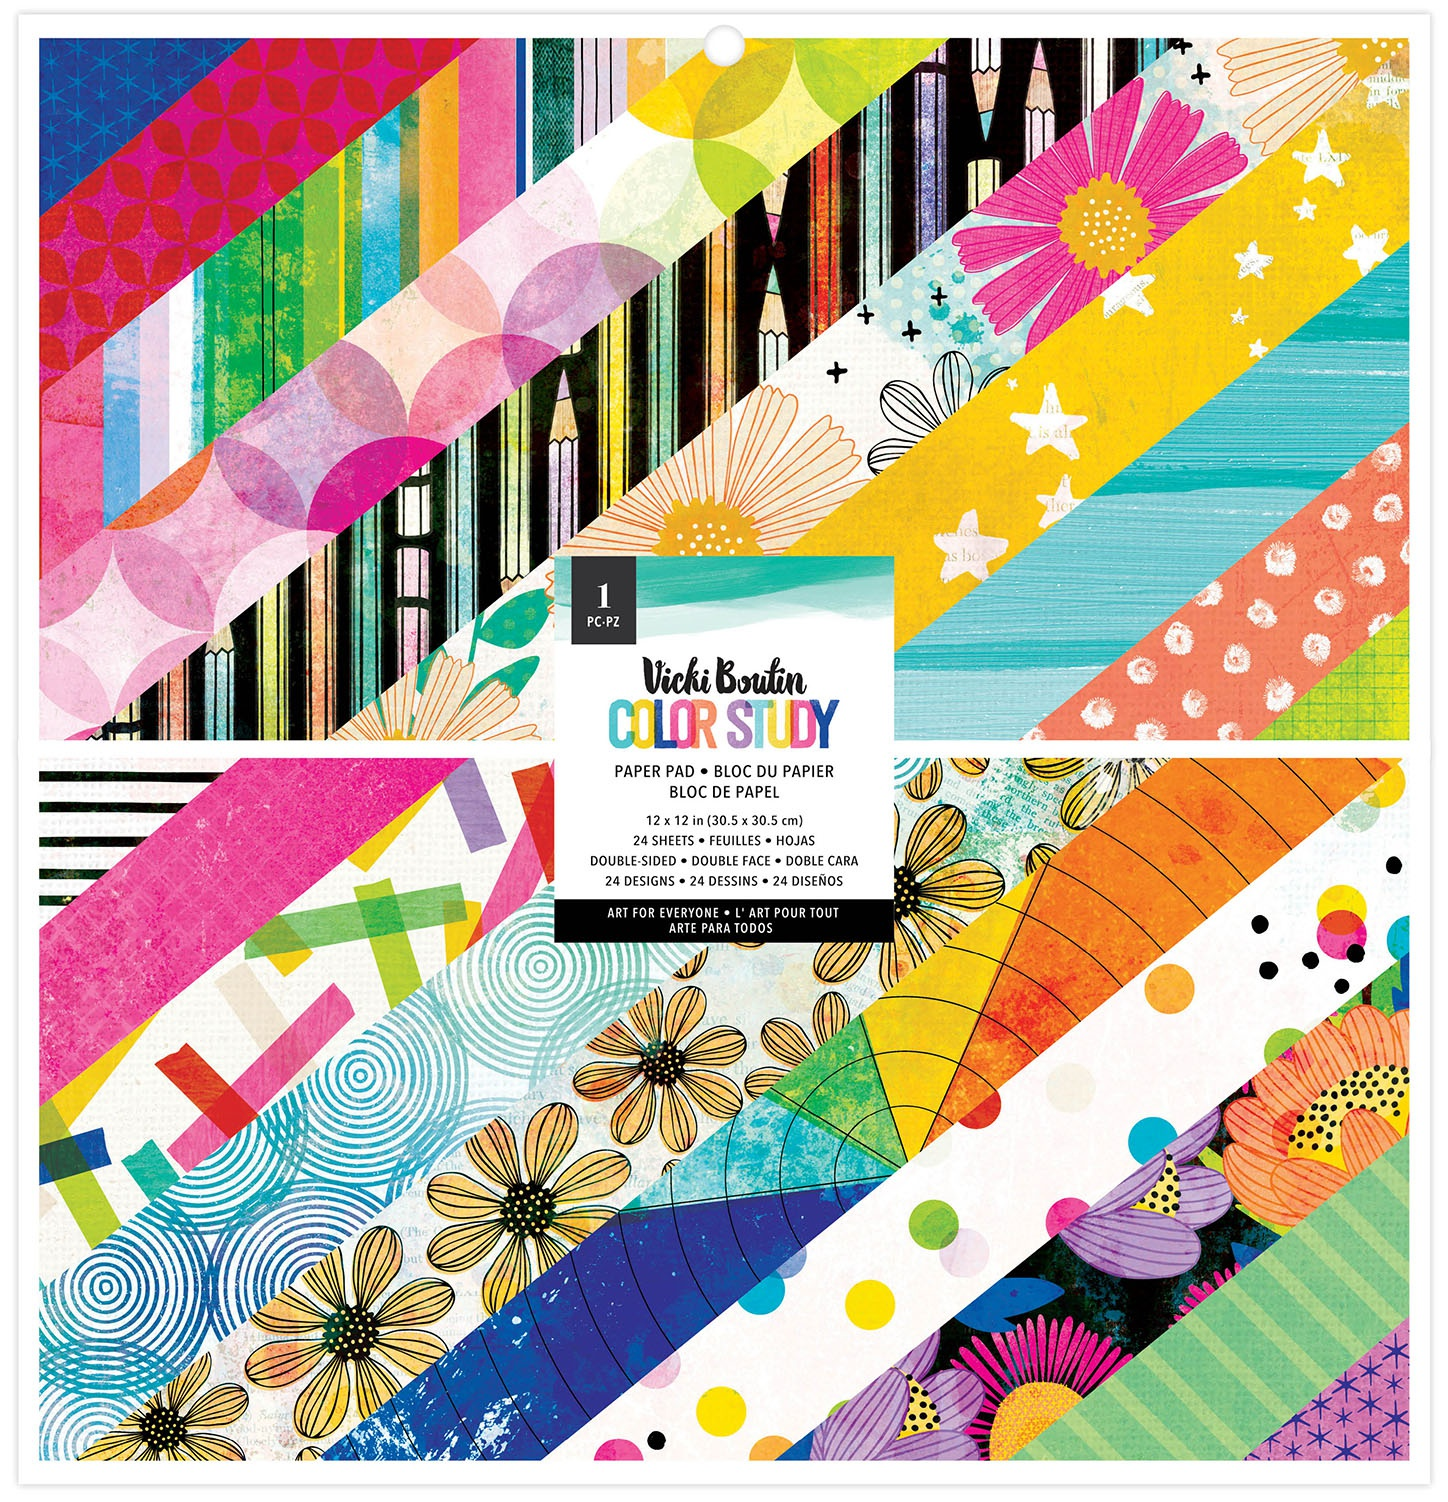 American Crafts Double-Sided Paper Pad 12X12 24/Pkg-Vicki Boutin Color Study